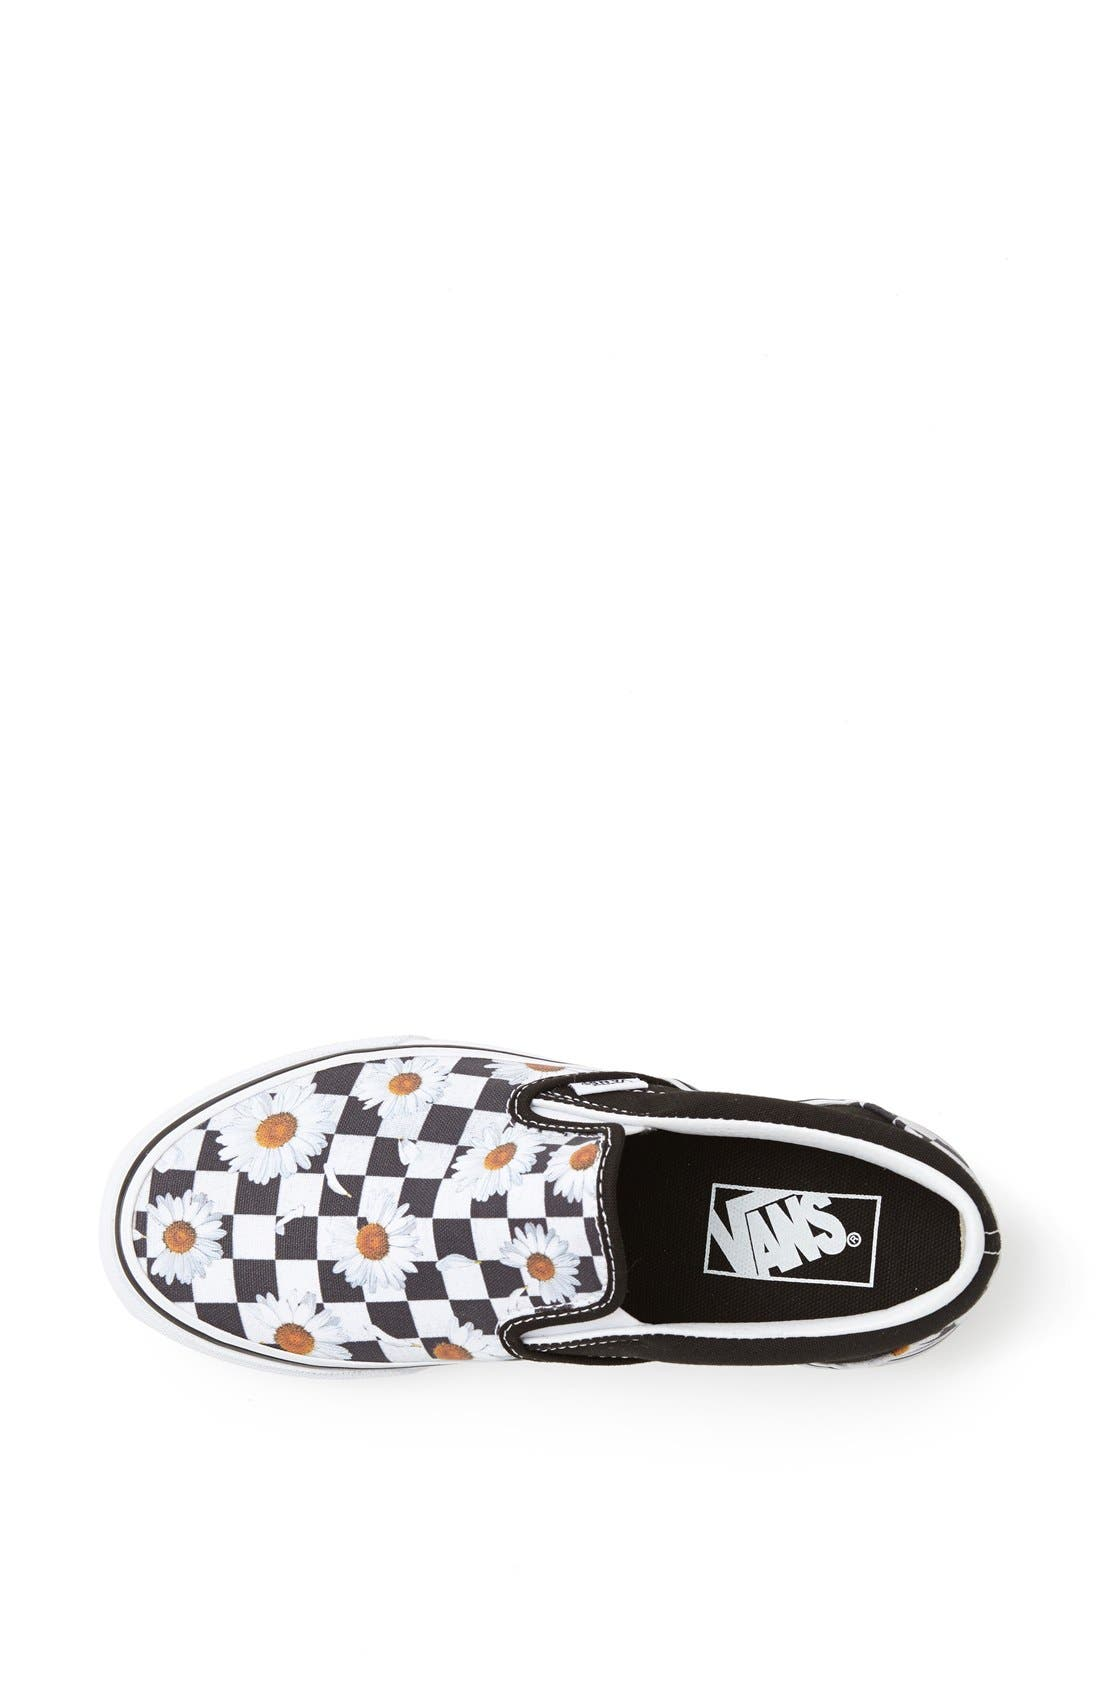 Alternate Image 3  - Vans 'He Loves Me, He Loves Me Not' Slip-On Sneaker (Women)